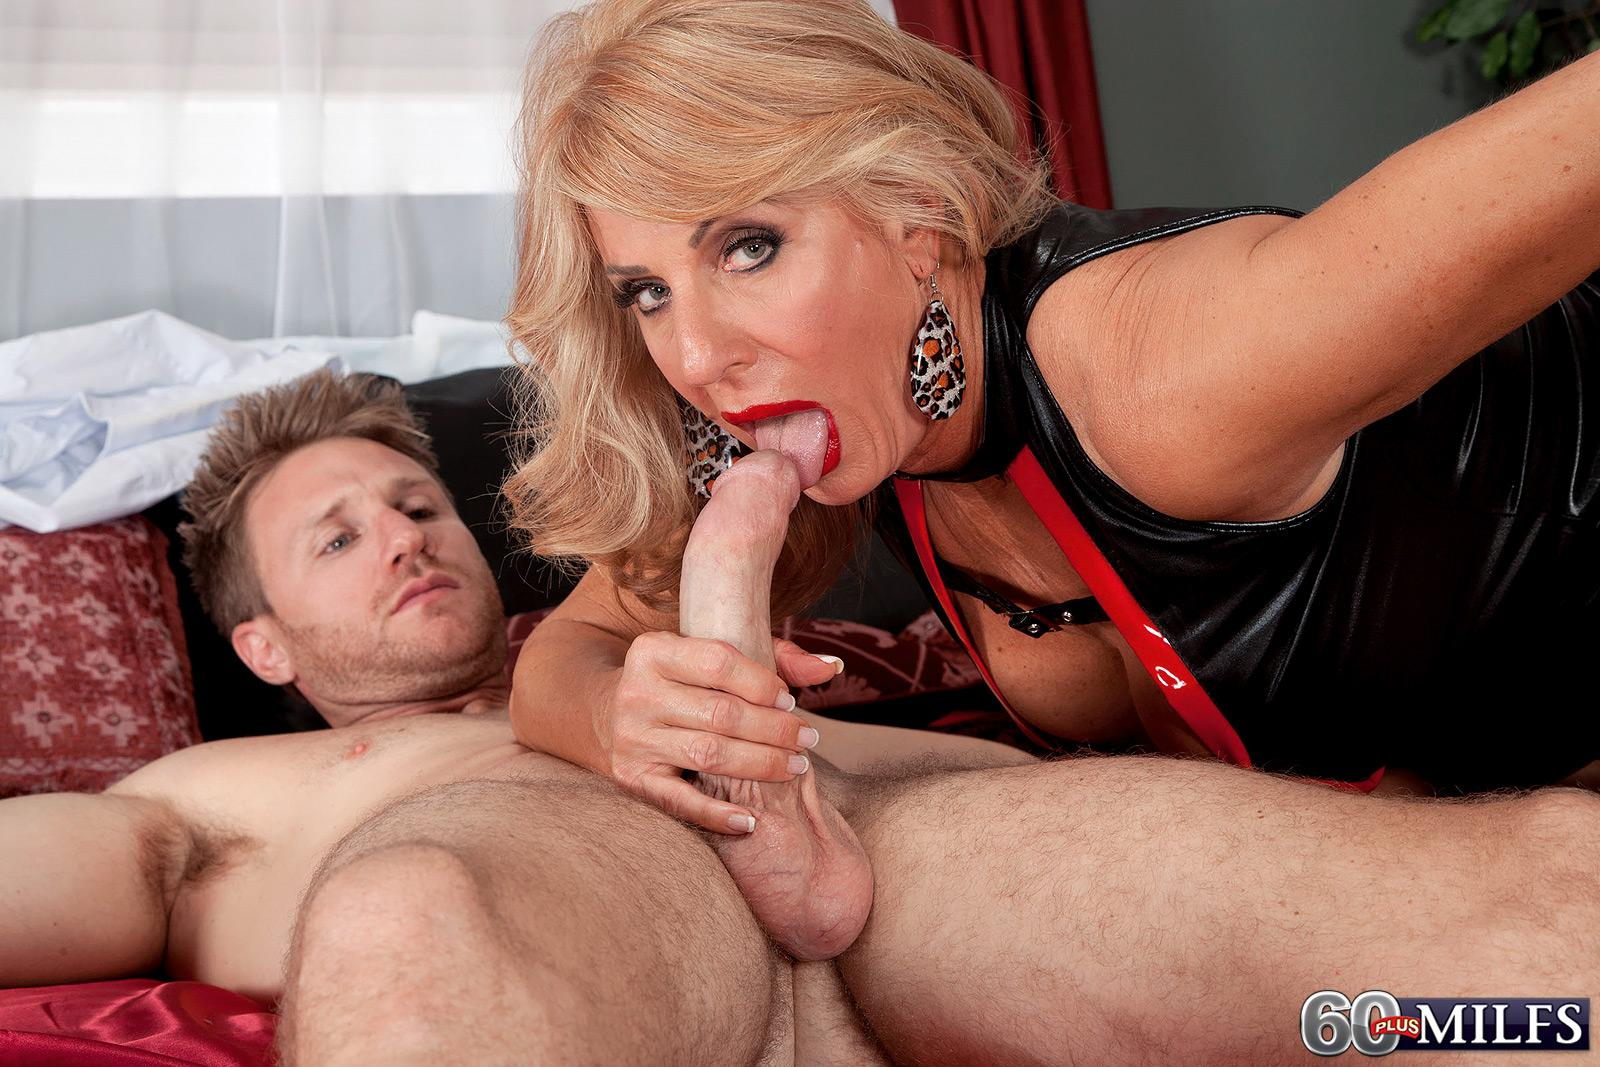 Bigtit blond hand job